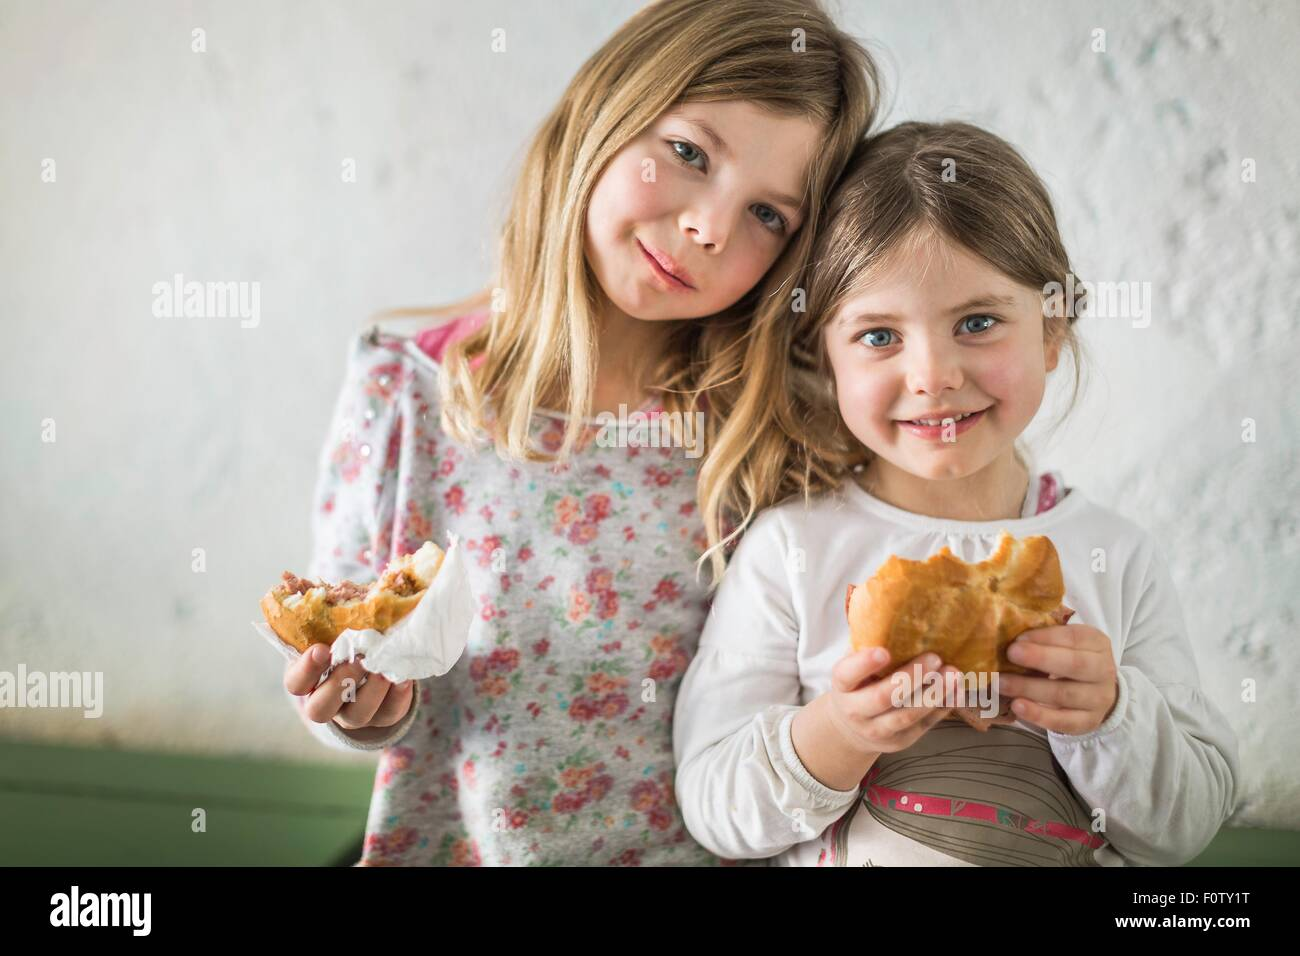 Two young girls eating savoury roll - Stock Image